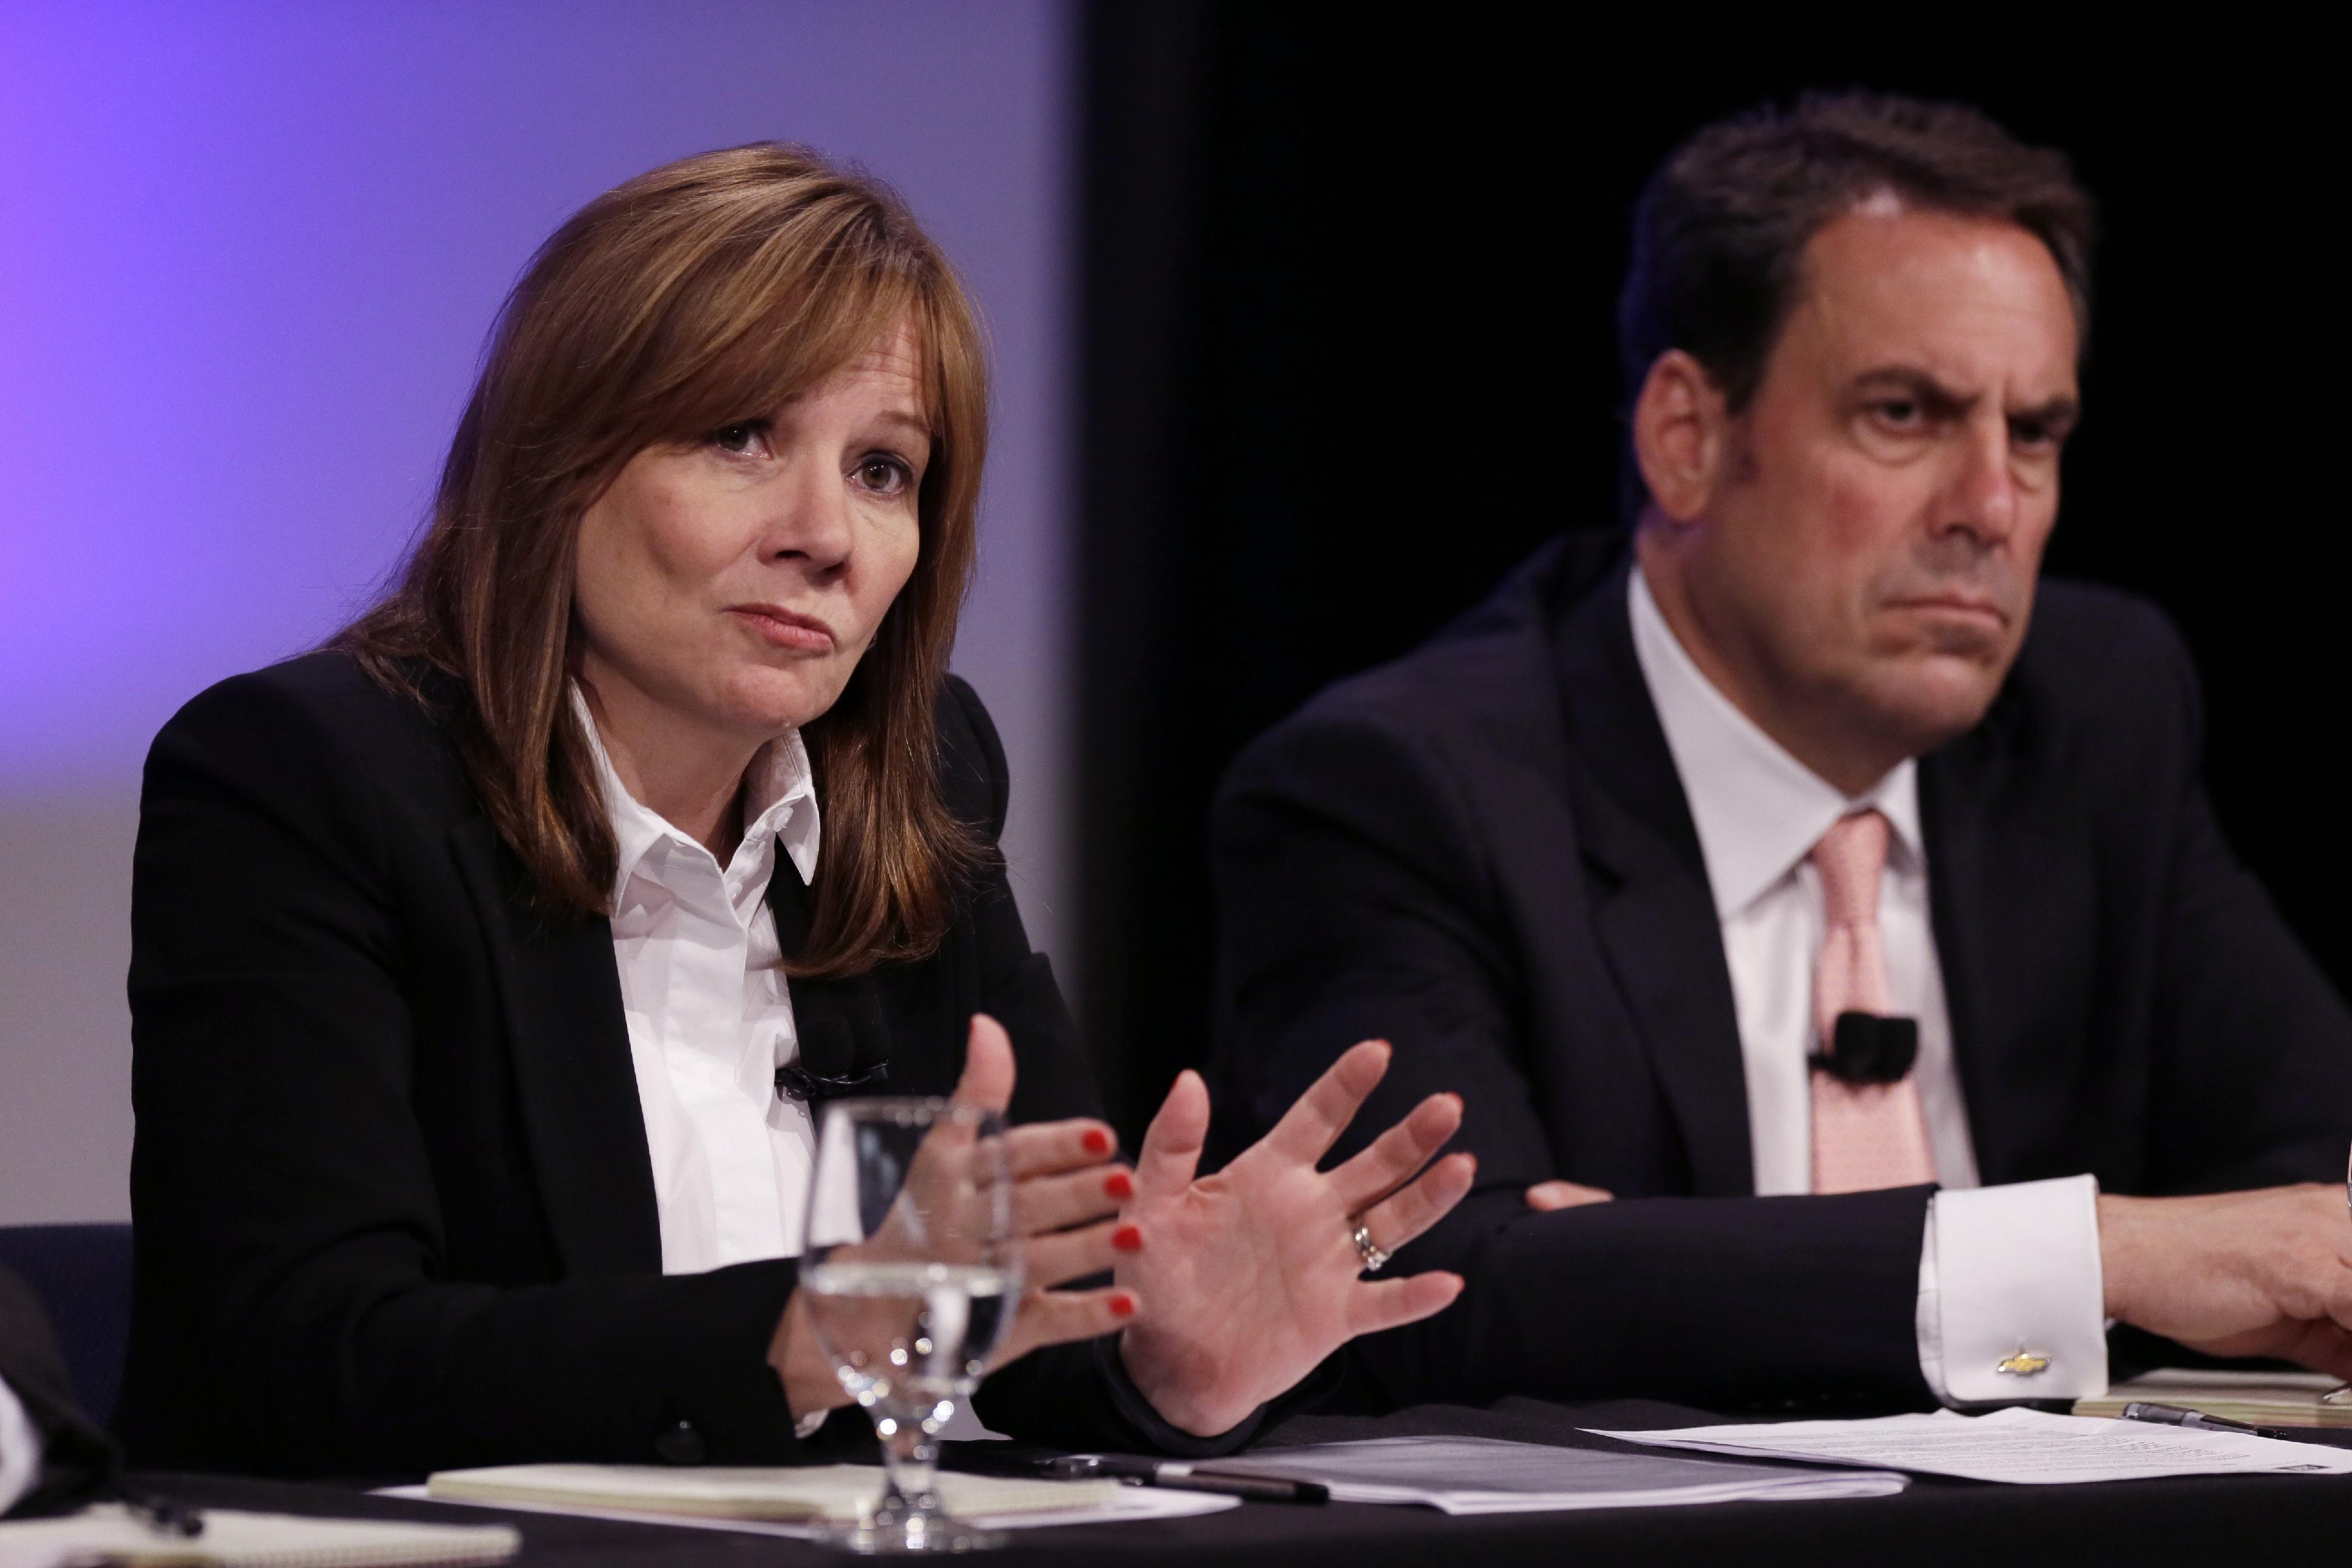 General Motors CEO Mary Barra, and Executive Vice President Mark Reuss are seen during a press conference at the General Motors Technical Center in Warren, Mich., Thursday, June 5, 2014. They talked about the results released by an outside attorney's investigation why it took the company a decade to disclose a defect in small cars that is now linked to 13 deaths. (AP Photo/Carlos Osorio)